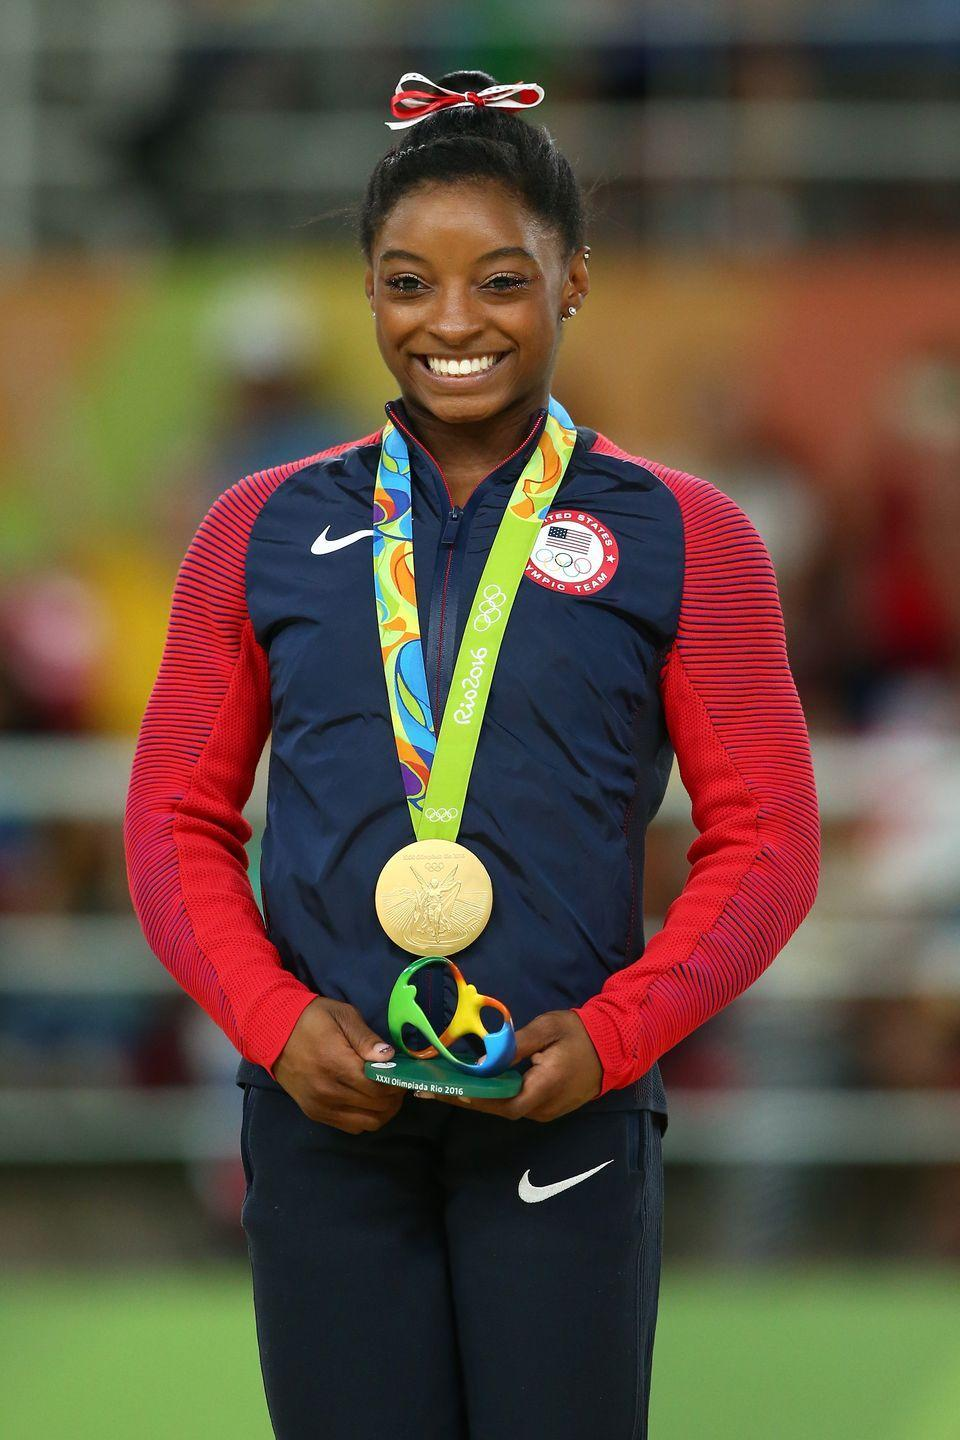 <p>Simone Biles had already racked up an impressive title count in World competitions from 2013 until 2015, but the then-19-year-old gymnast didn't compete on the Olympic stage until the 2016 Summer Games held in Rio de Janeir0. Not only did fans fall in love with Biles during her Olympic debut, she took home four gold and one bronze medal.</p>